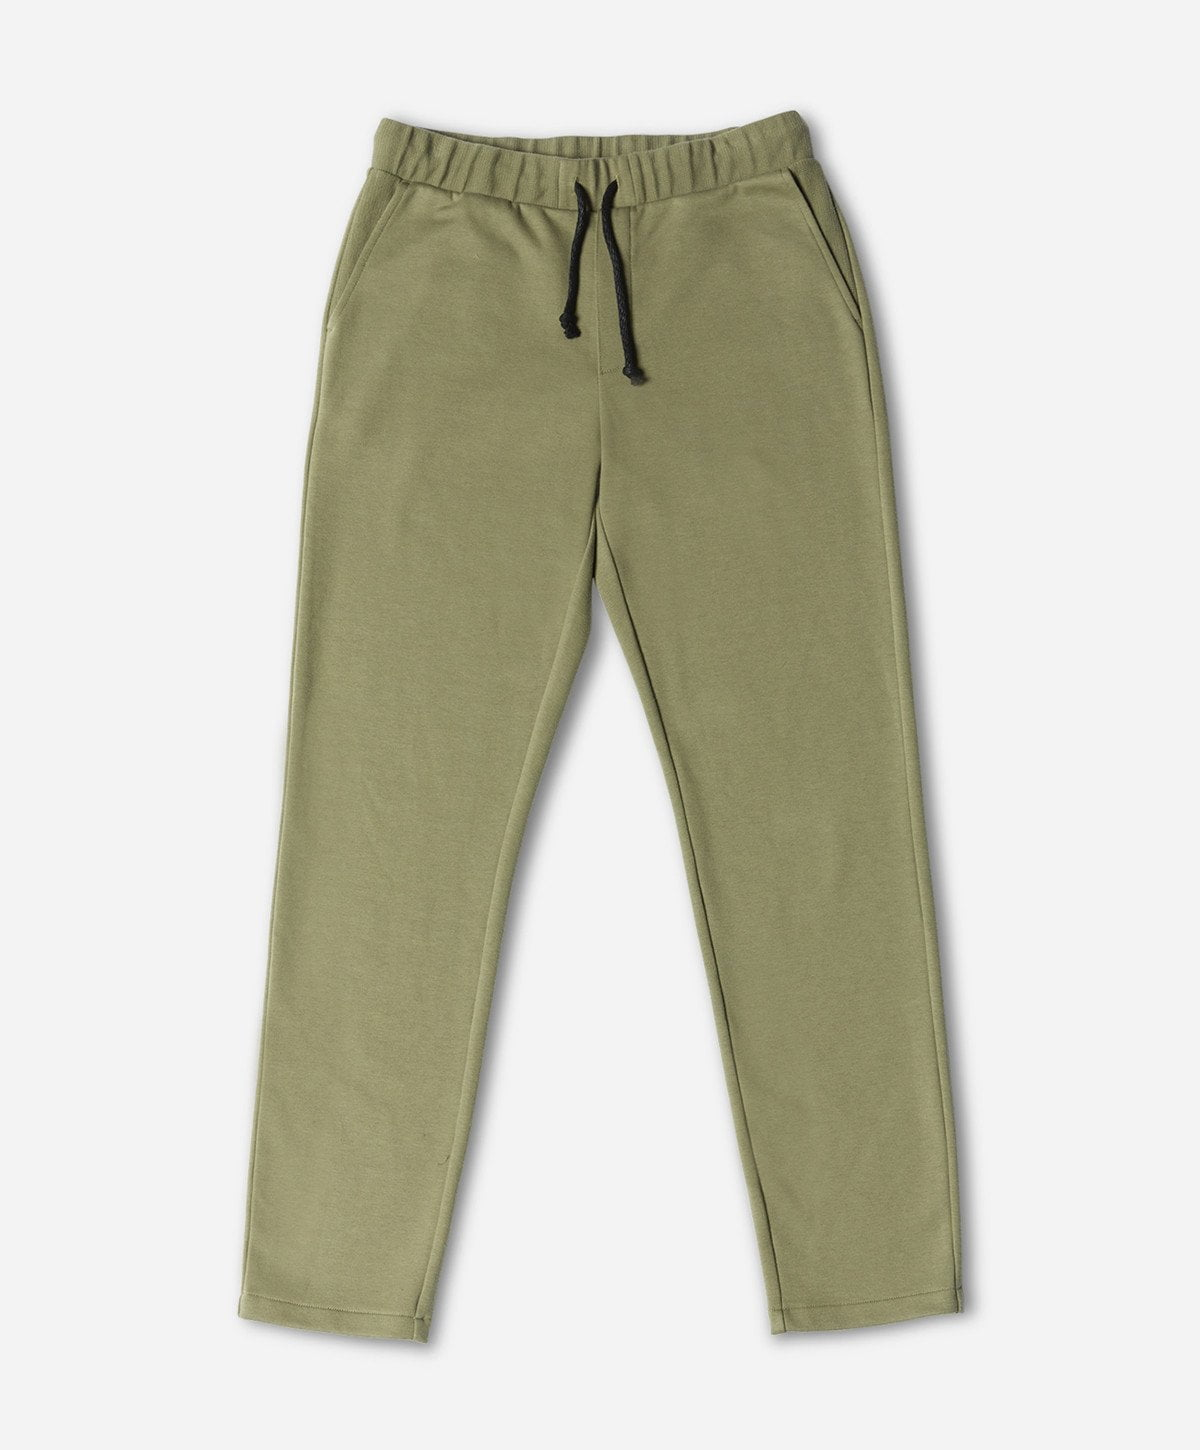 Bel Air Jogger - Olive Drab